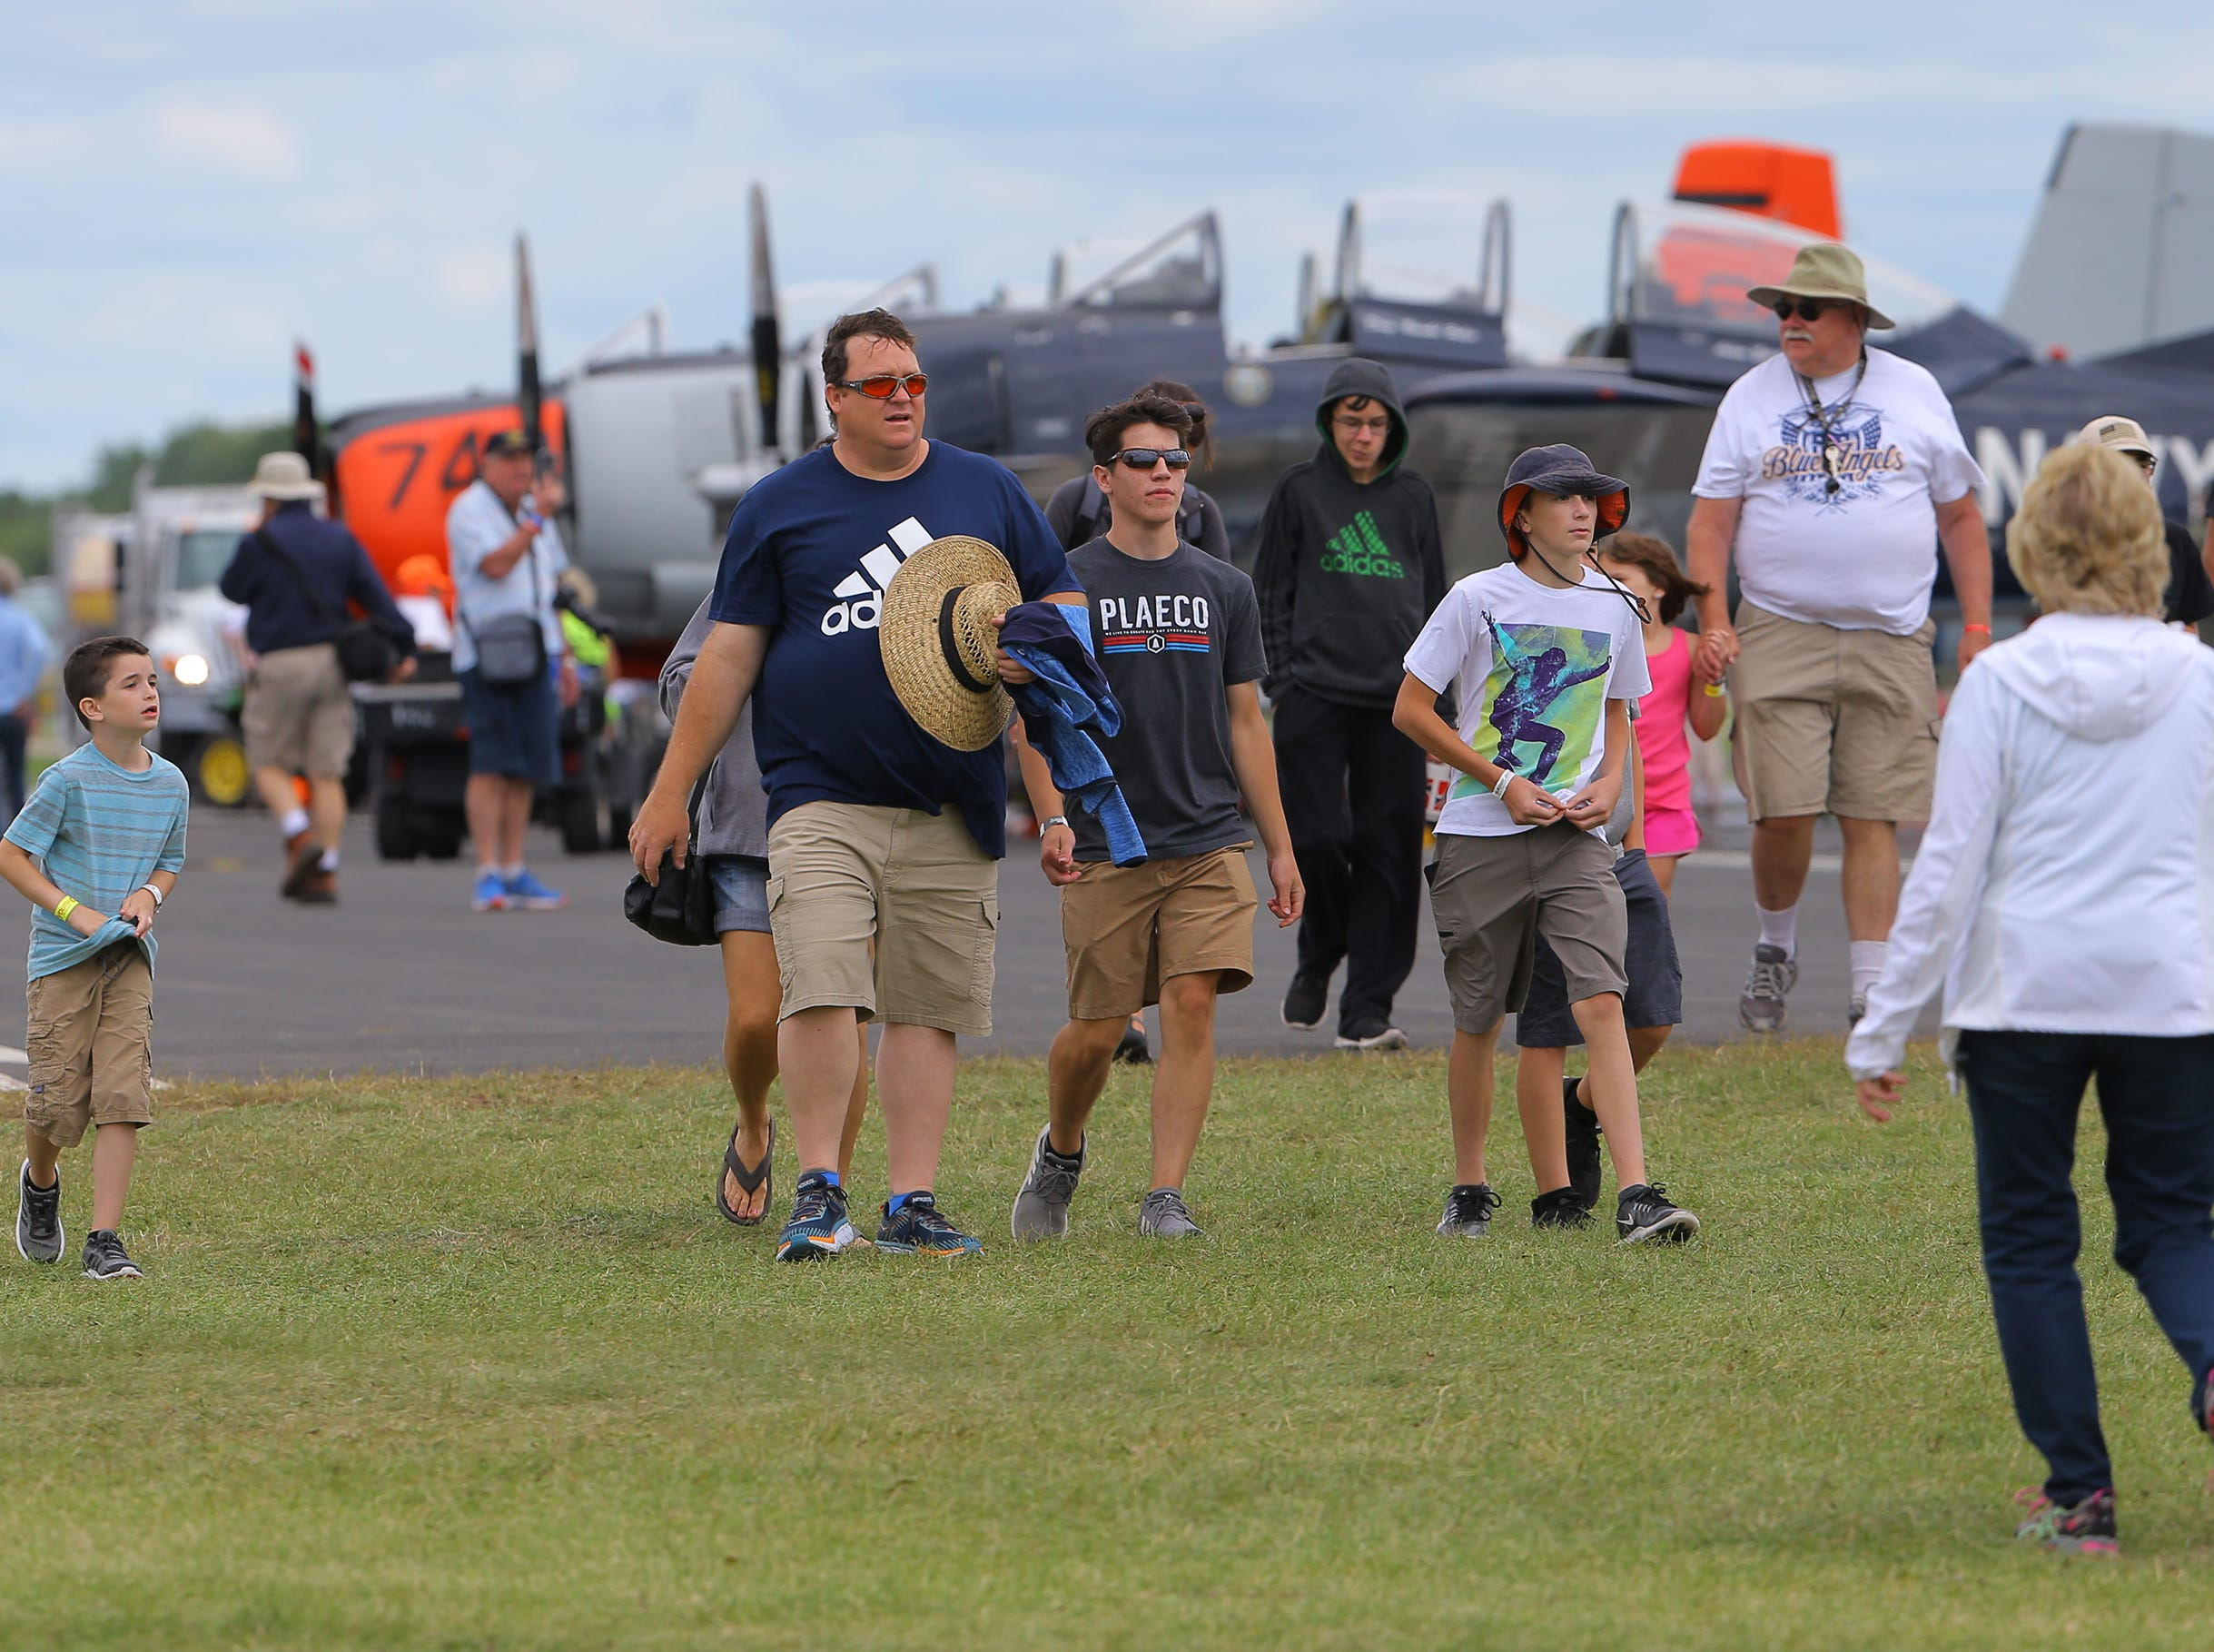 Warbirds are a popular attraction, Thursday, July 26, 2018, in Oshkosh, Wis.  The 66th annual Experimental Aircraft Association Fly-In Convention, AirVenture 2018 draws over 500,000 people and over 10,000 planes from more than 70 nations annually to the area.  The convention runs through July 29.Joe Sienkiewicz/USA Today NETWORK-Wisconsin